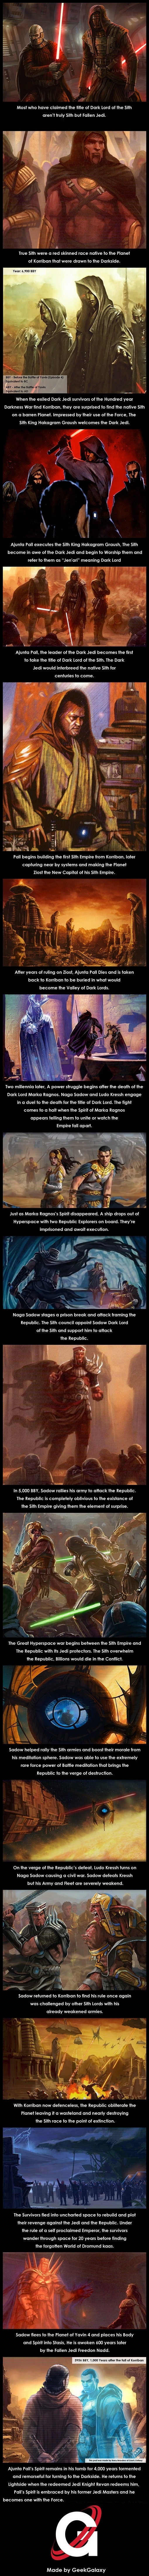 Origins of the Sith